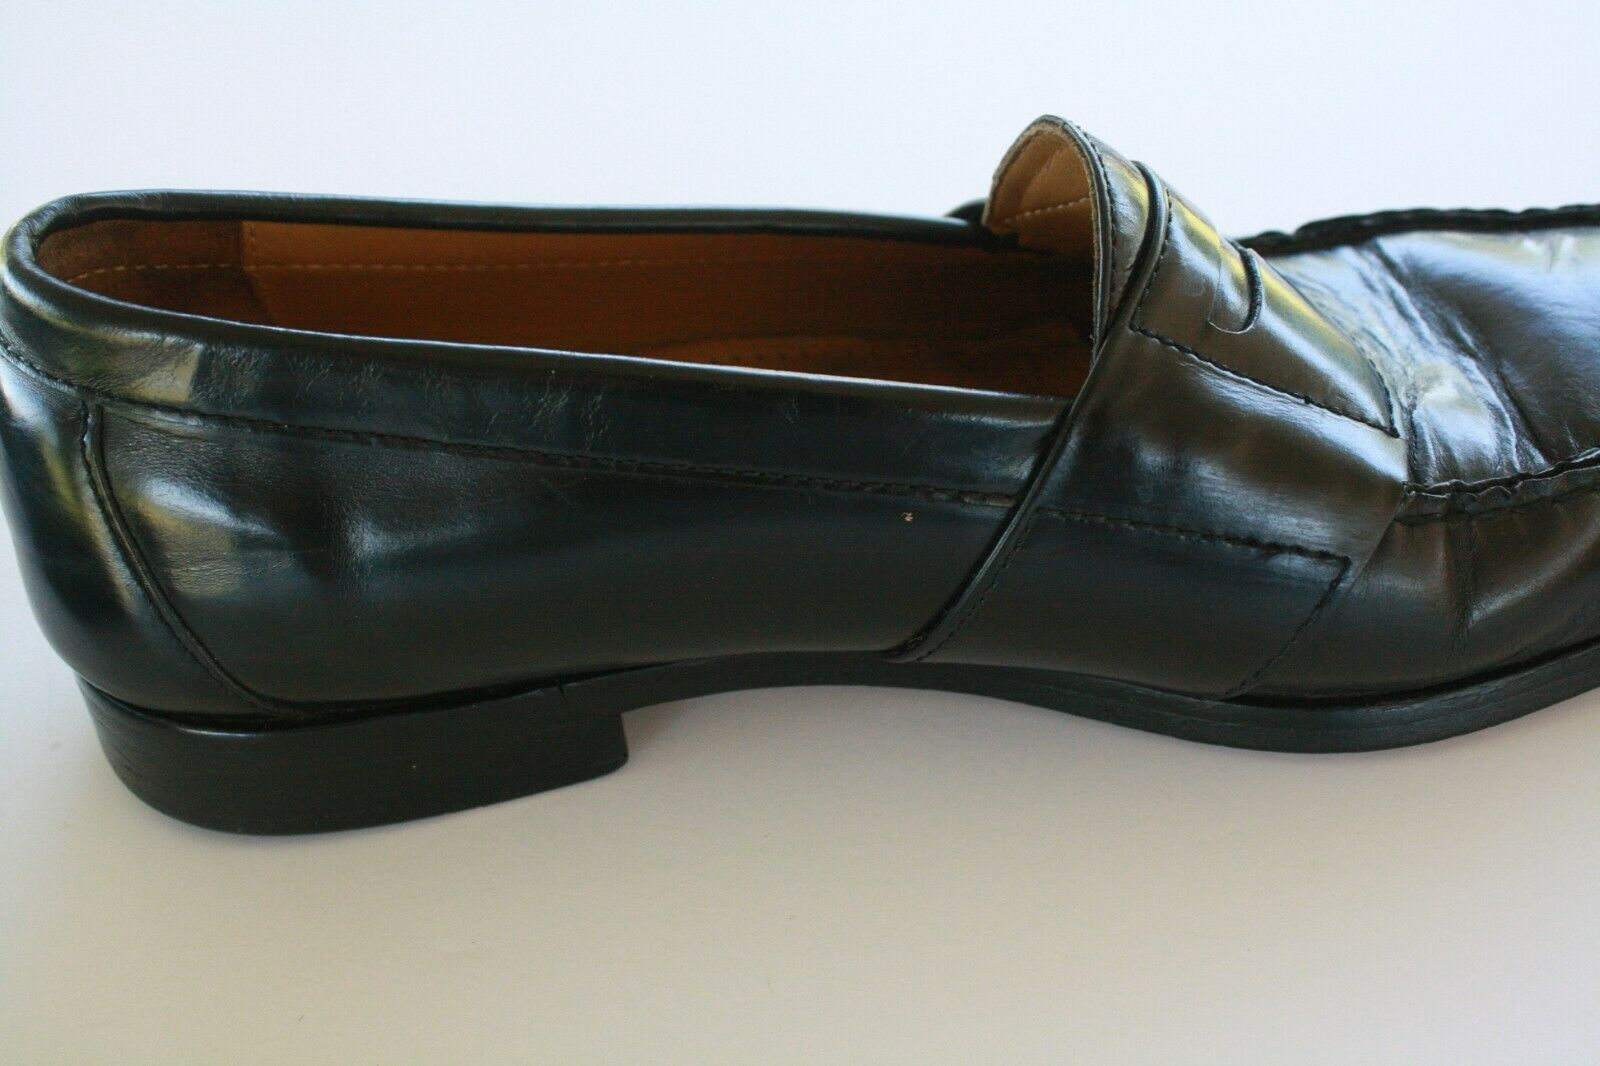 Cole Haan Men's Black Leather Slip On Casual Penny Loafers Size 8.5 M EUC image 3